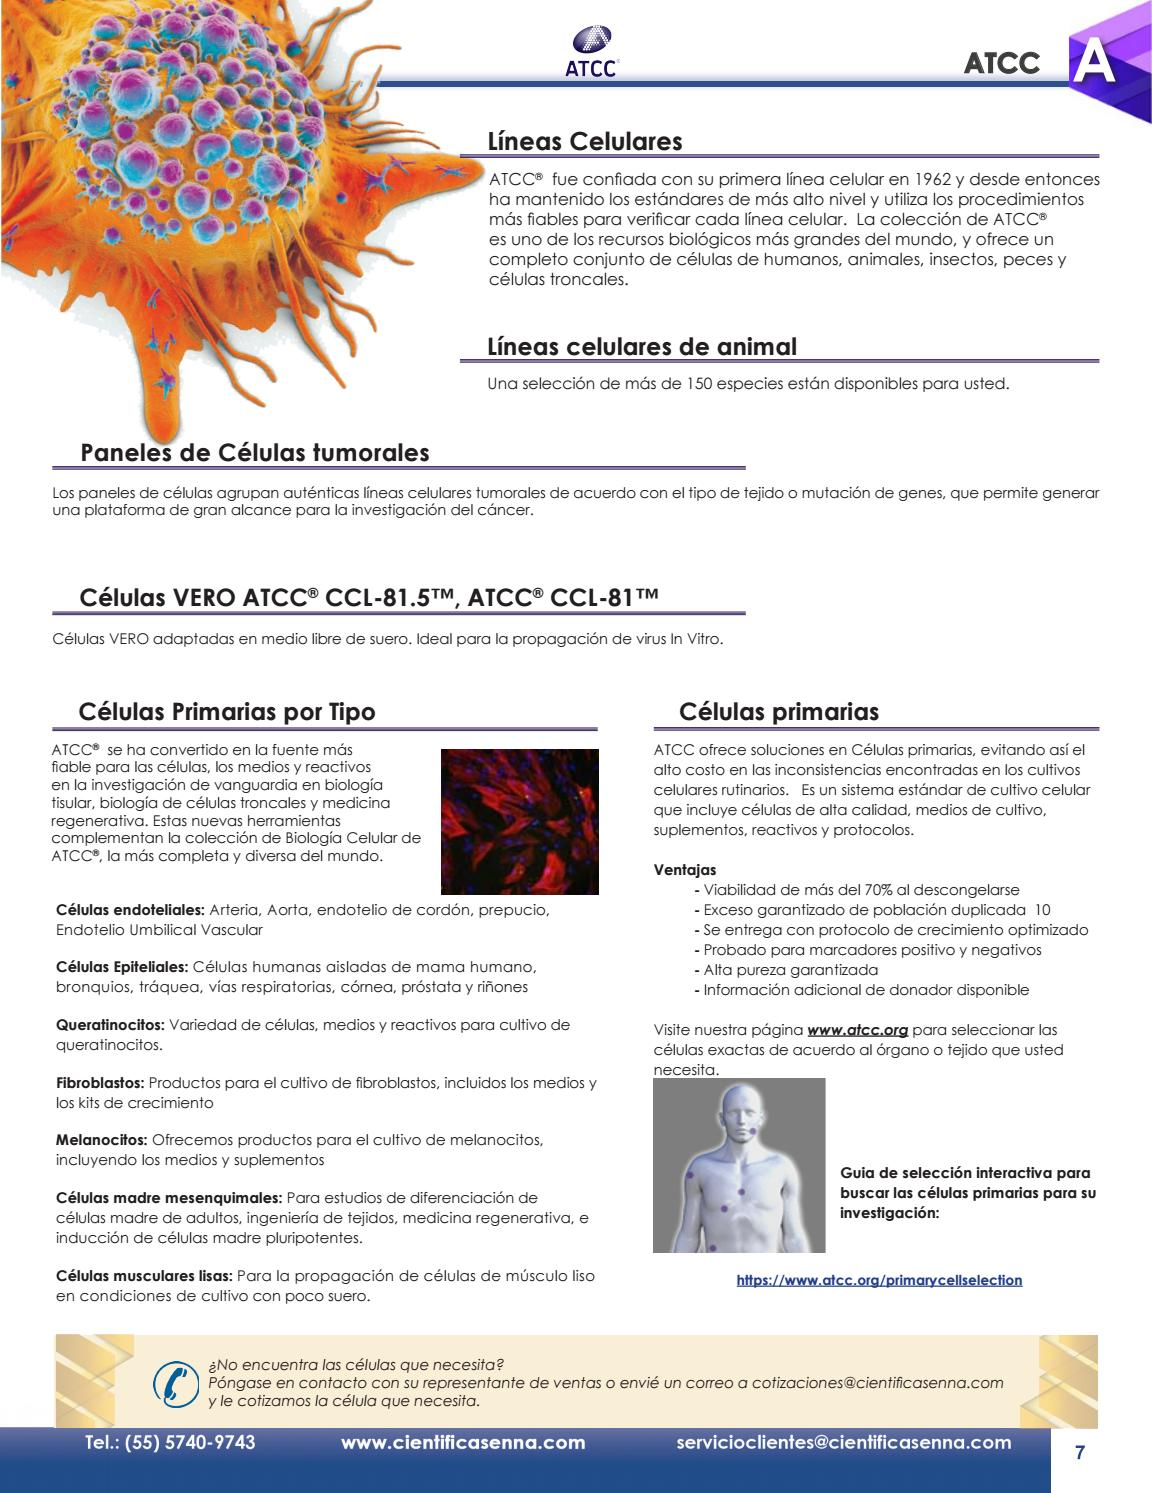 Catalogo Cientifica Senna by Senna Publications - issuu